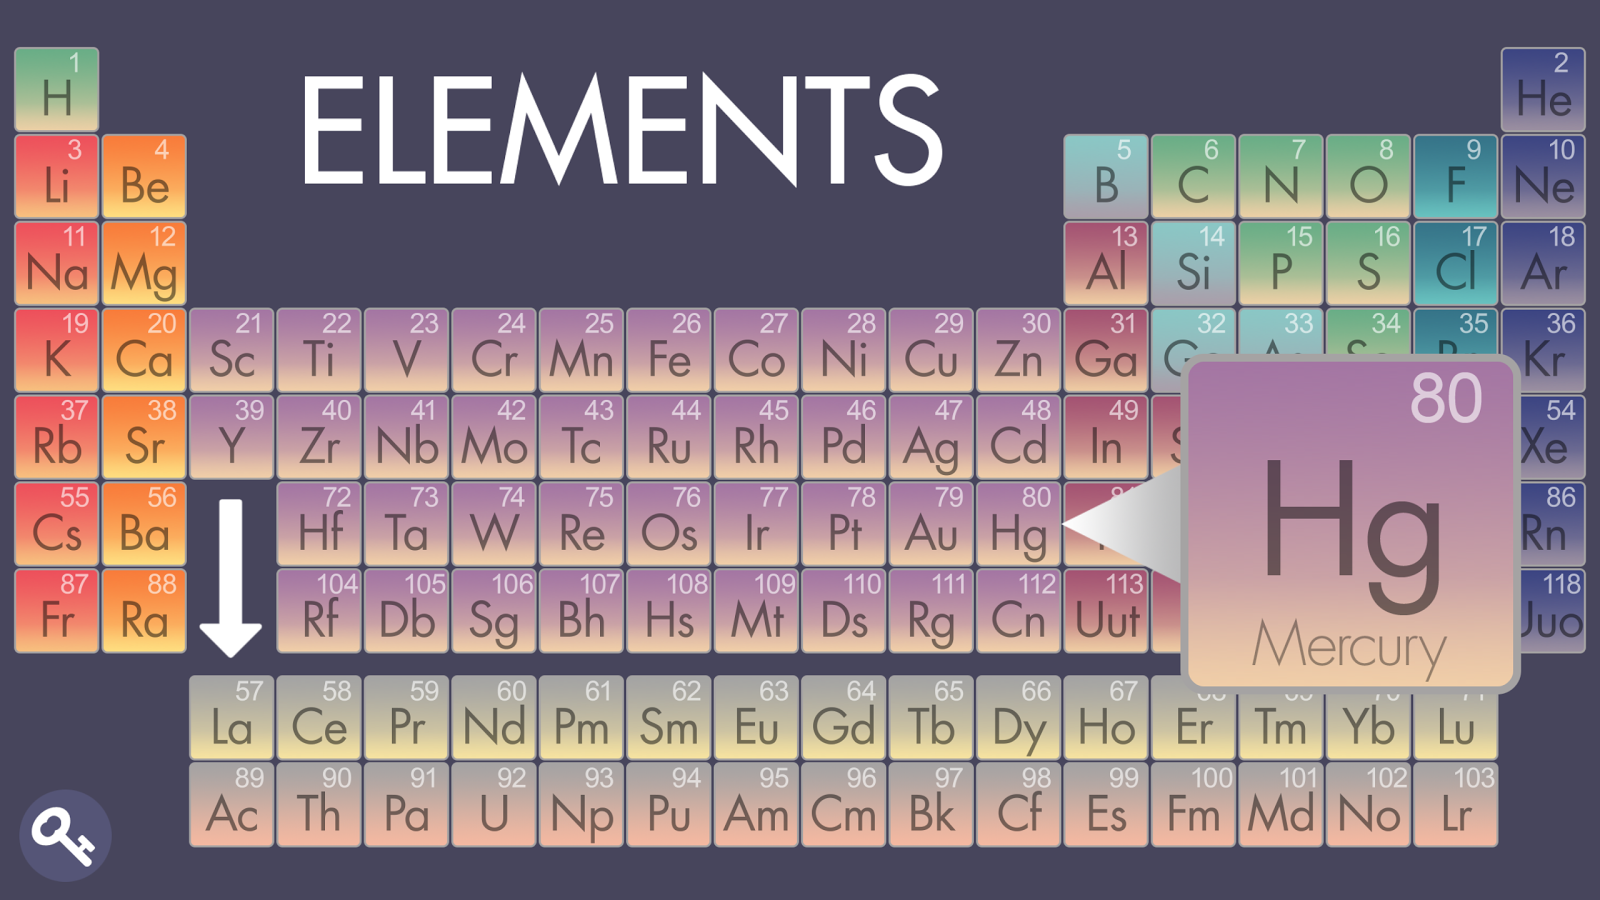 Elements periodic table 11 apk download android education apps elements periodic table 11 screenshot 1 elements periodic table 11 screenshot 2 urtaz Choice Image